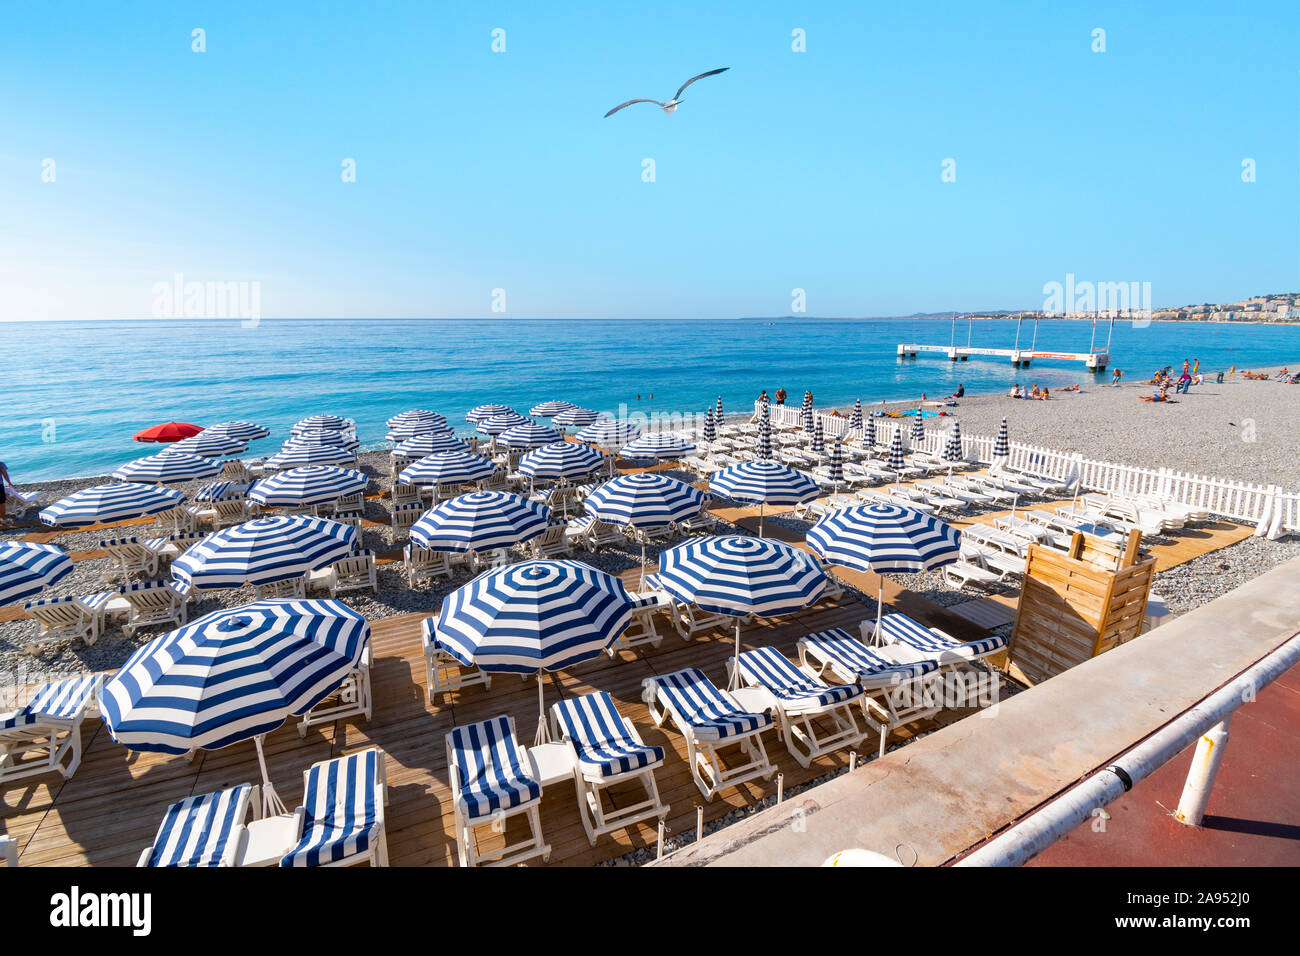 a-seagull-flies-over-the-lounge-chairs-at-a-resort-on-the-beach-at-the-bay-of-angels-on-the-french-riviera-in-nice-france-2A952J0.jpg